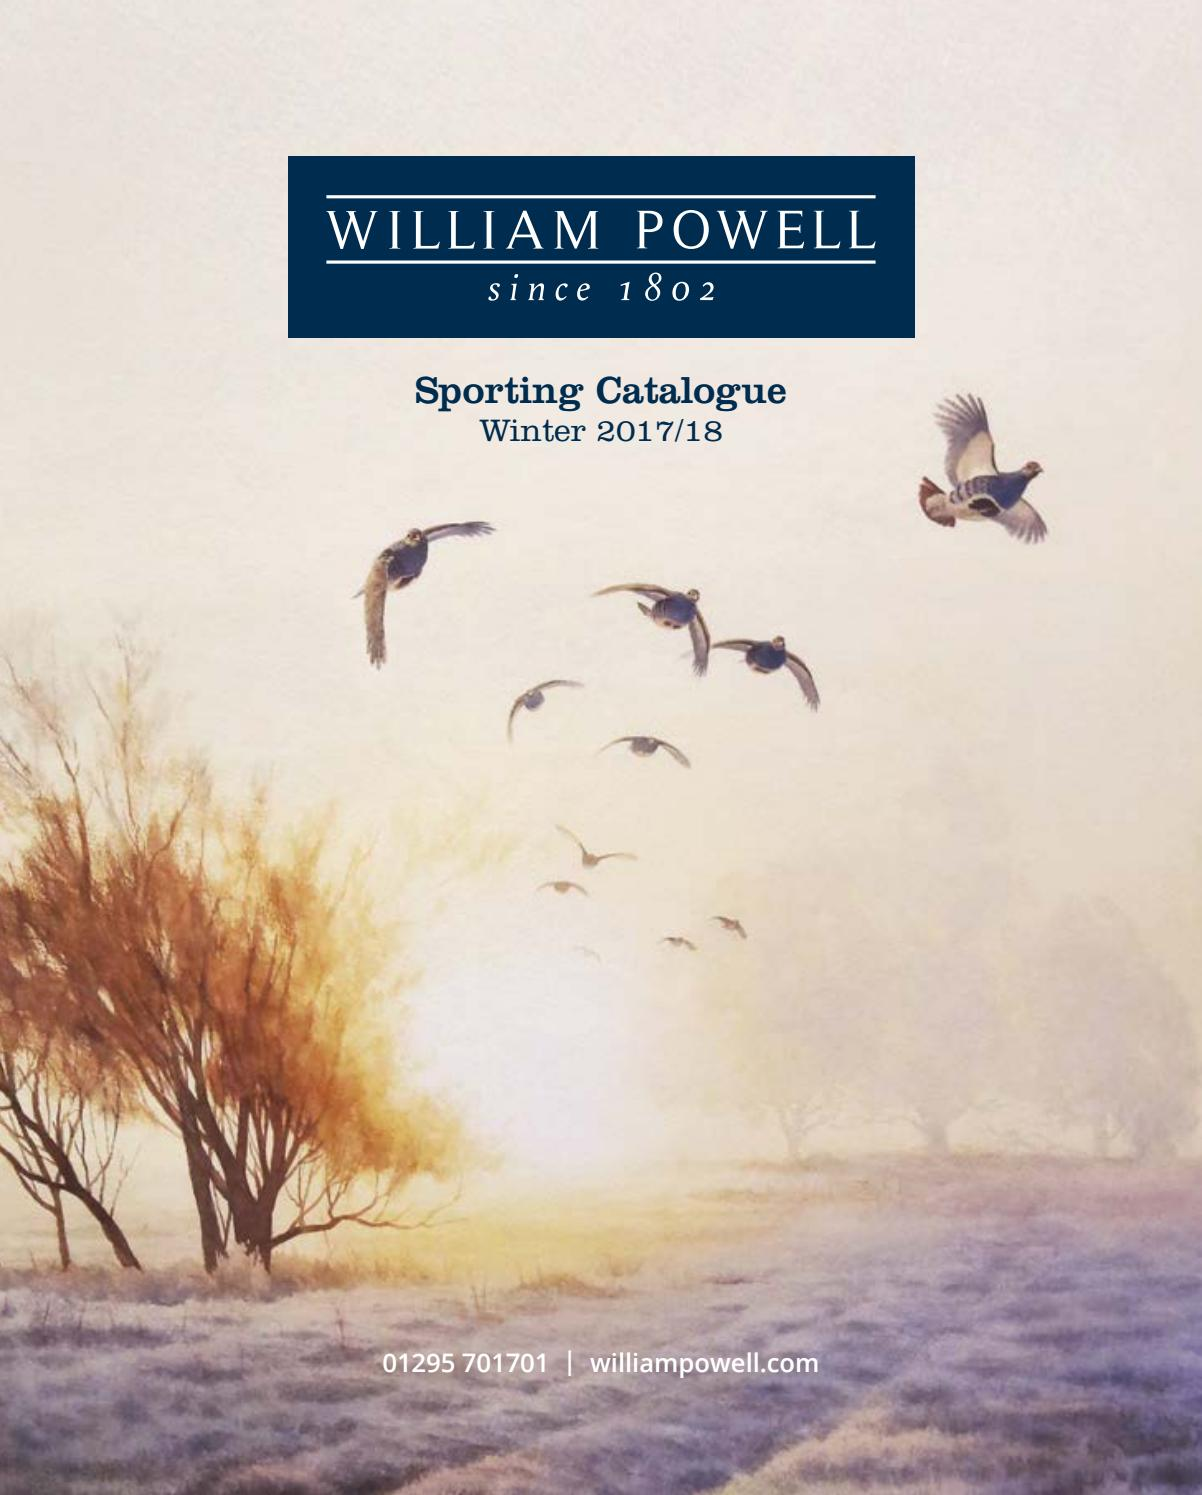 e79c5583023 William Powell Sporting Catalogue - Winter 2017 18 by William Powell ...